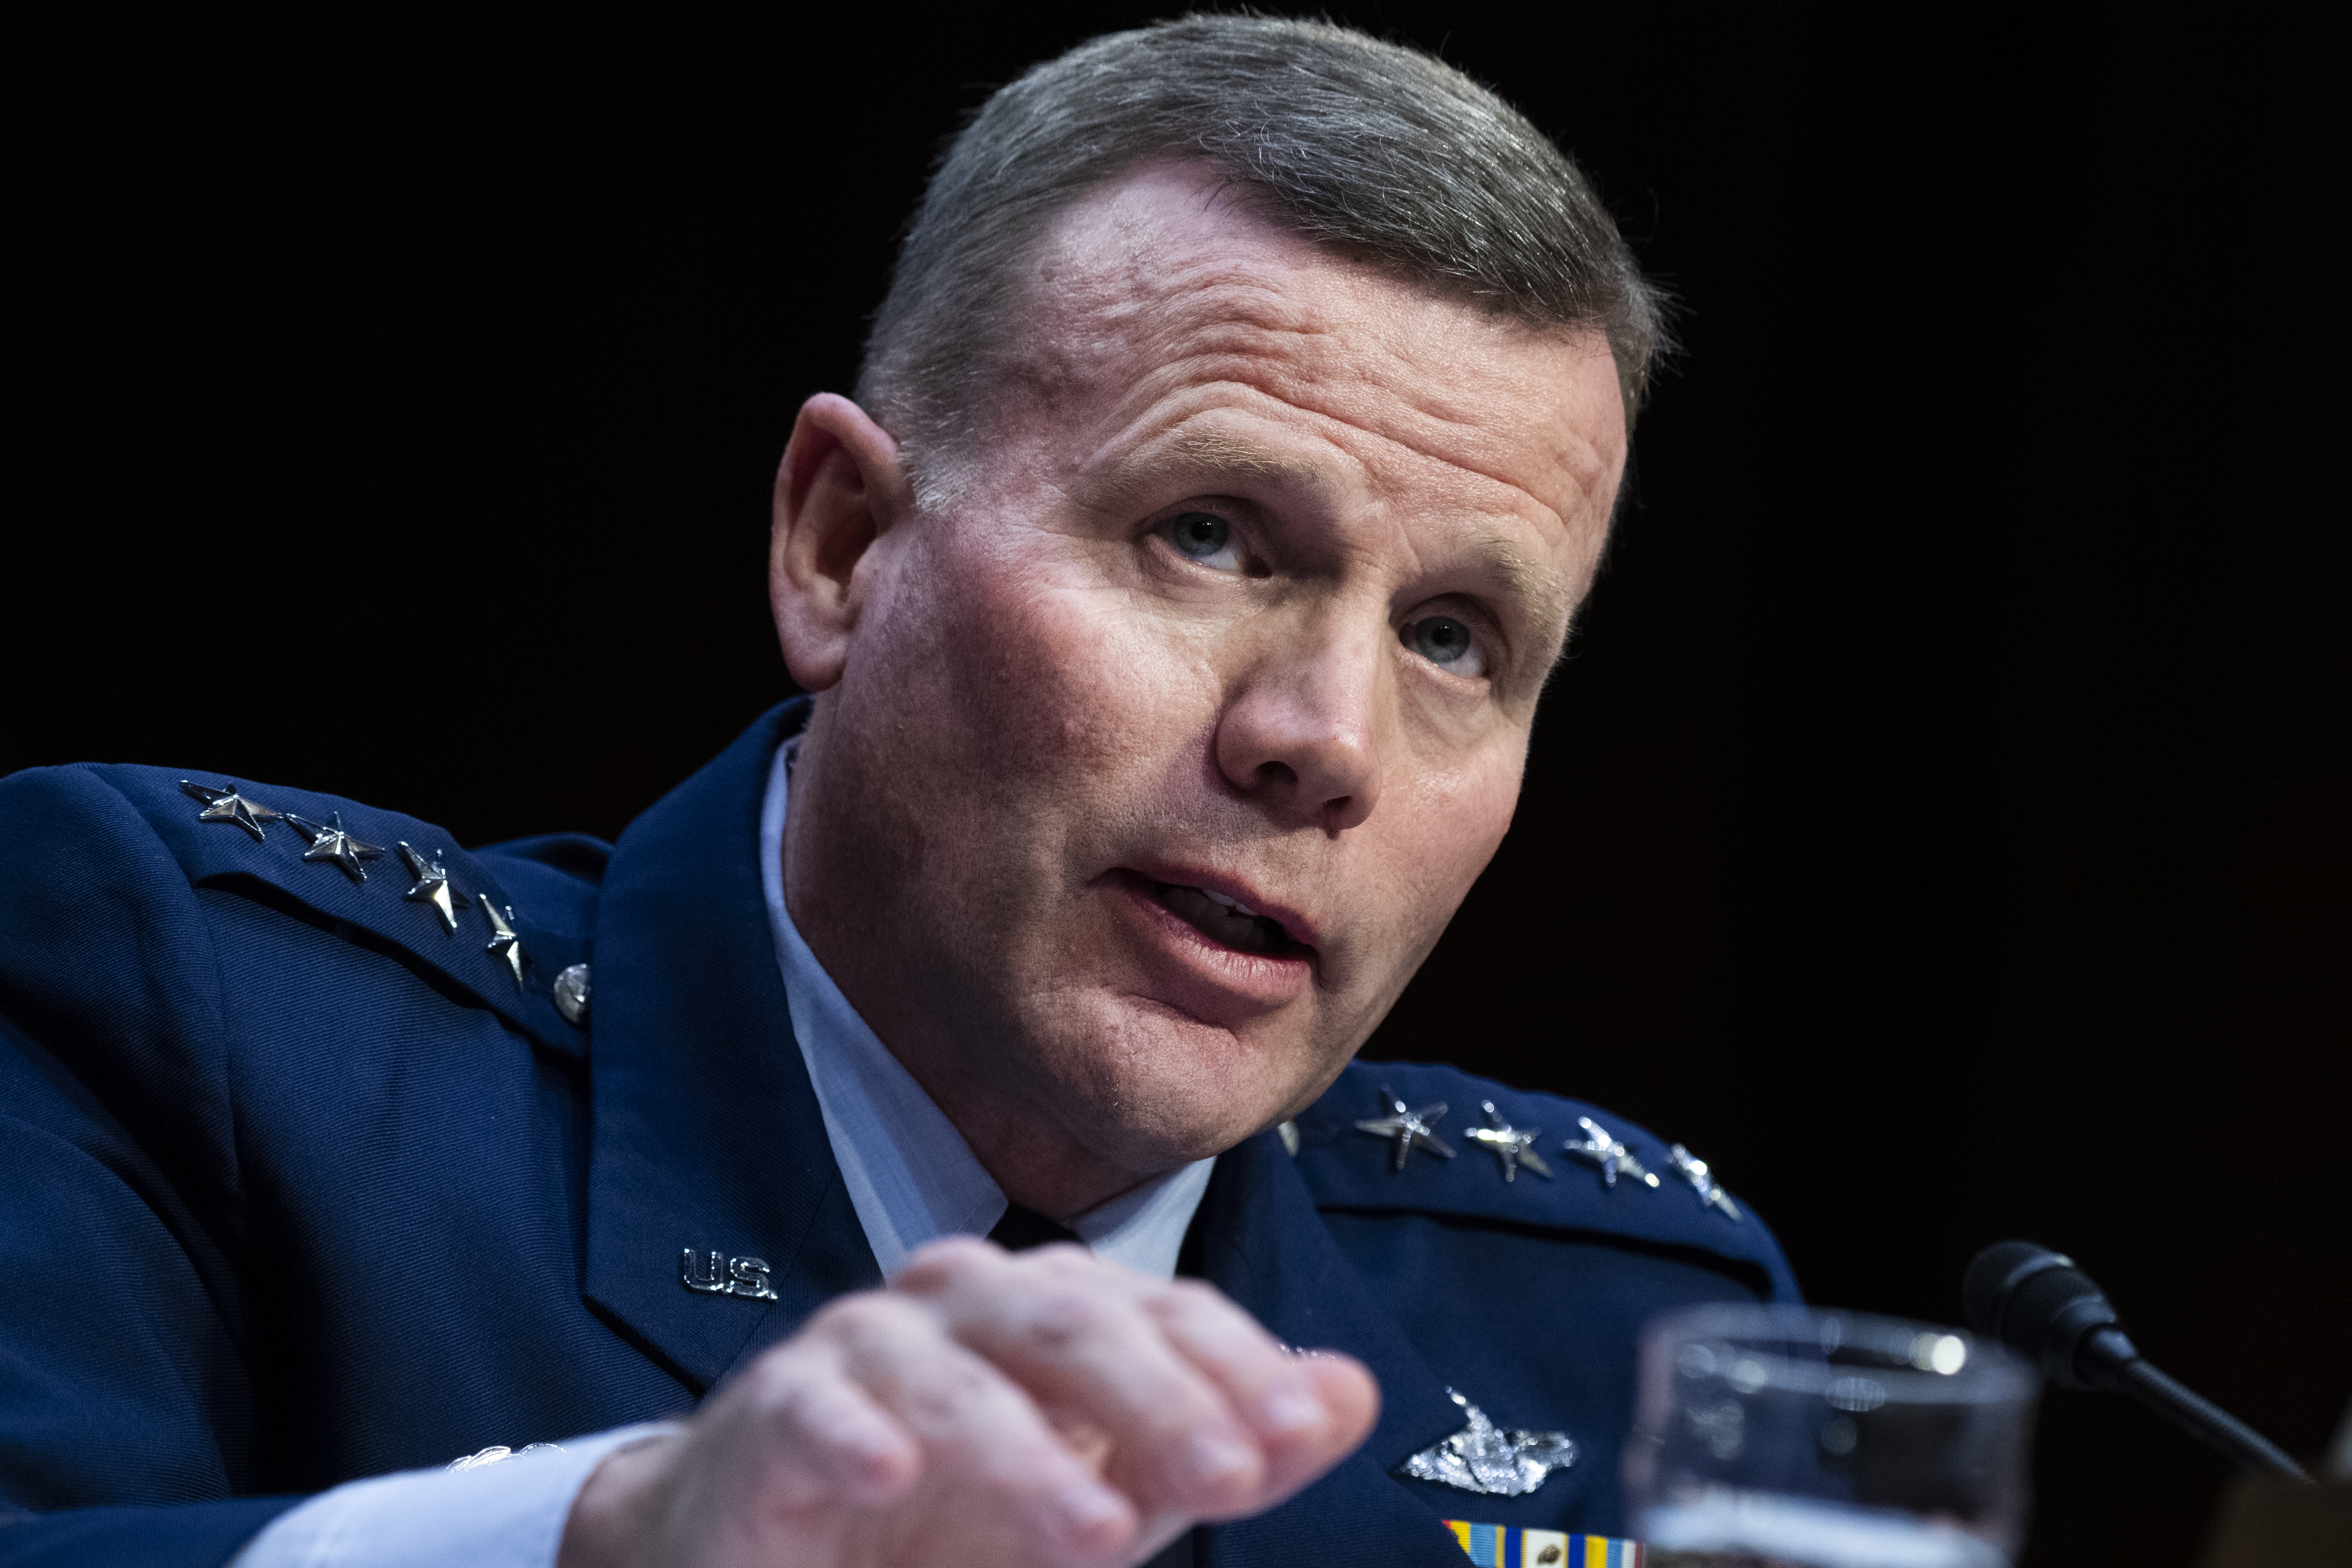 Air Force Gen. Tod D. Wolters, commander, U.S. European Command and NATO's Supreme Allied Commander Europe, and Army Gen. Stephen R. Lyons, off camera,  commander, U.S. Transportation Command, testify during the Senate Armed Services Committee hearing on their respective commands in Hart Building on Tuesday, February 25, 2020. (Tom Williams/CQ Roll Call via Getty Images)